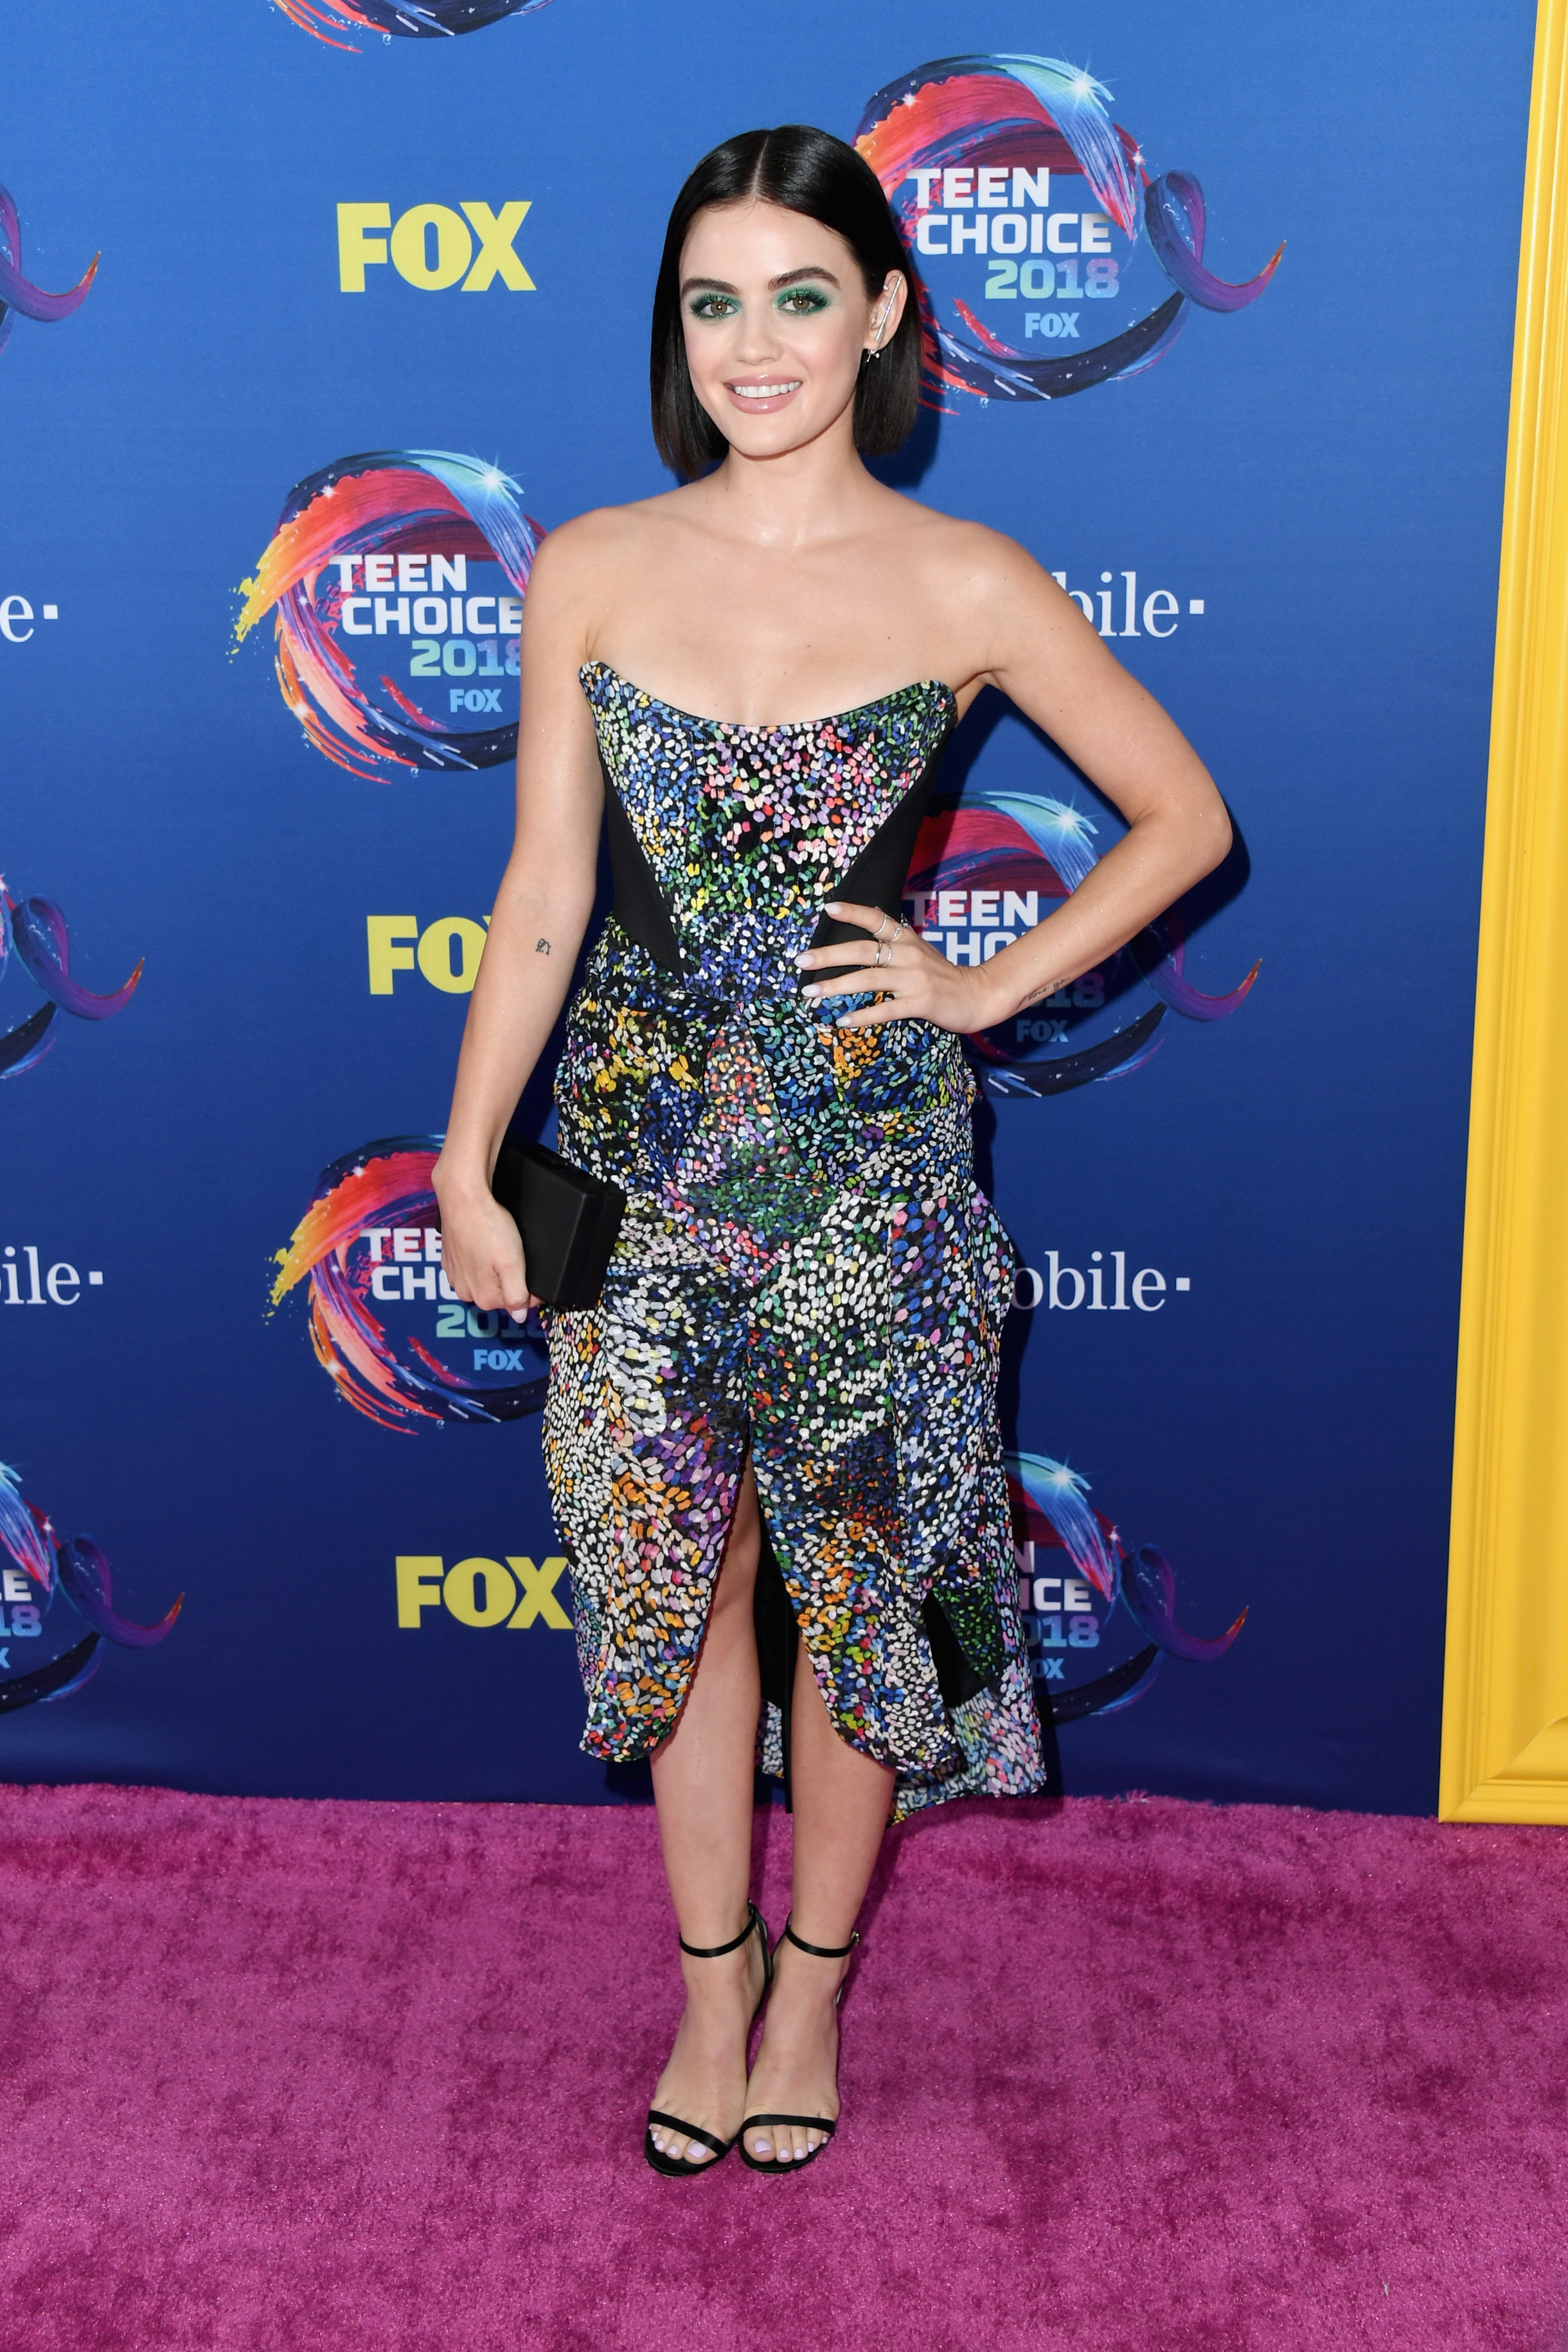 Feet Lucy Hale nudes (14 images), Topless